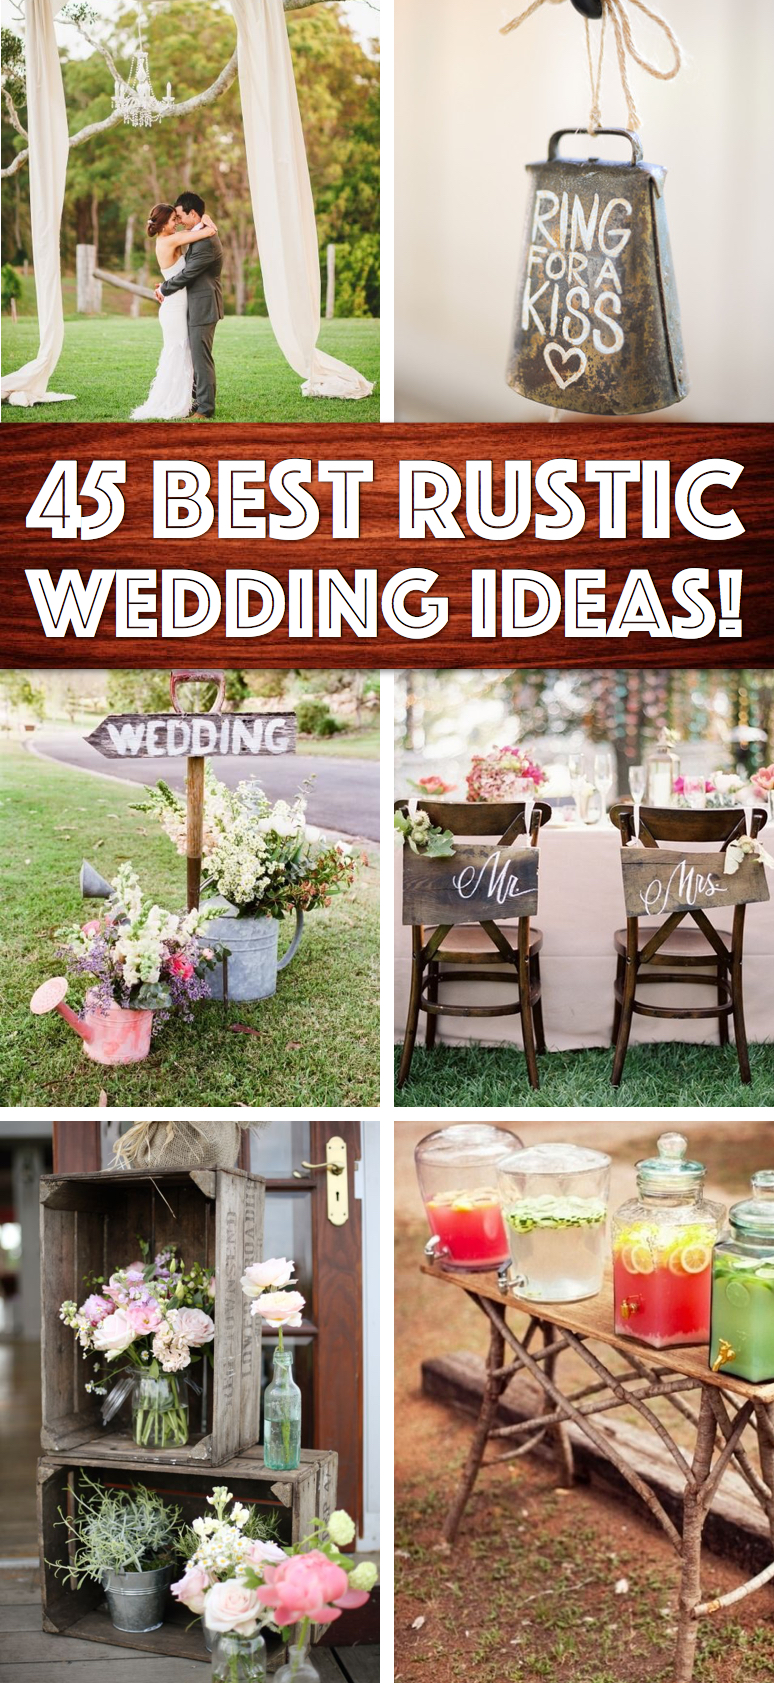 Shine on your wedding day with these breath taking rustic wedding shine on your wedding day with these breath taking rustic wedding ideas junglespirit Image collections